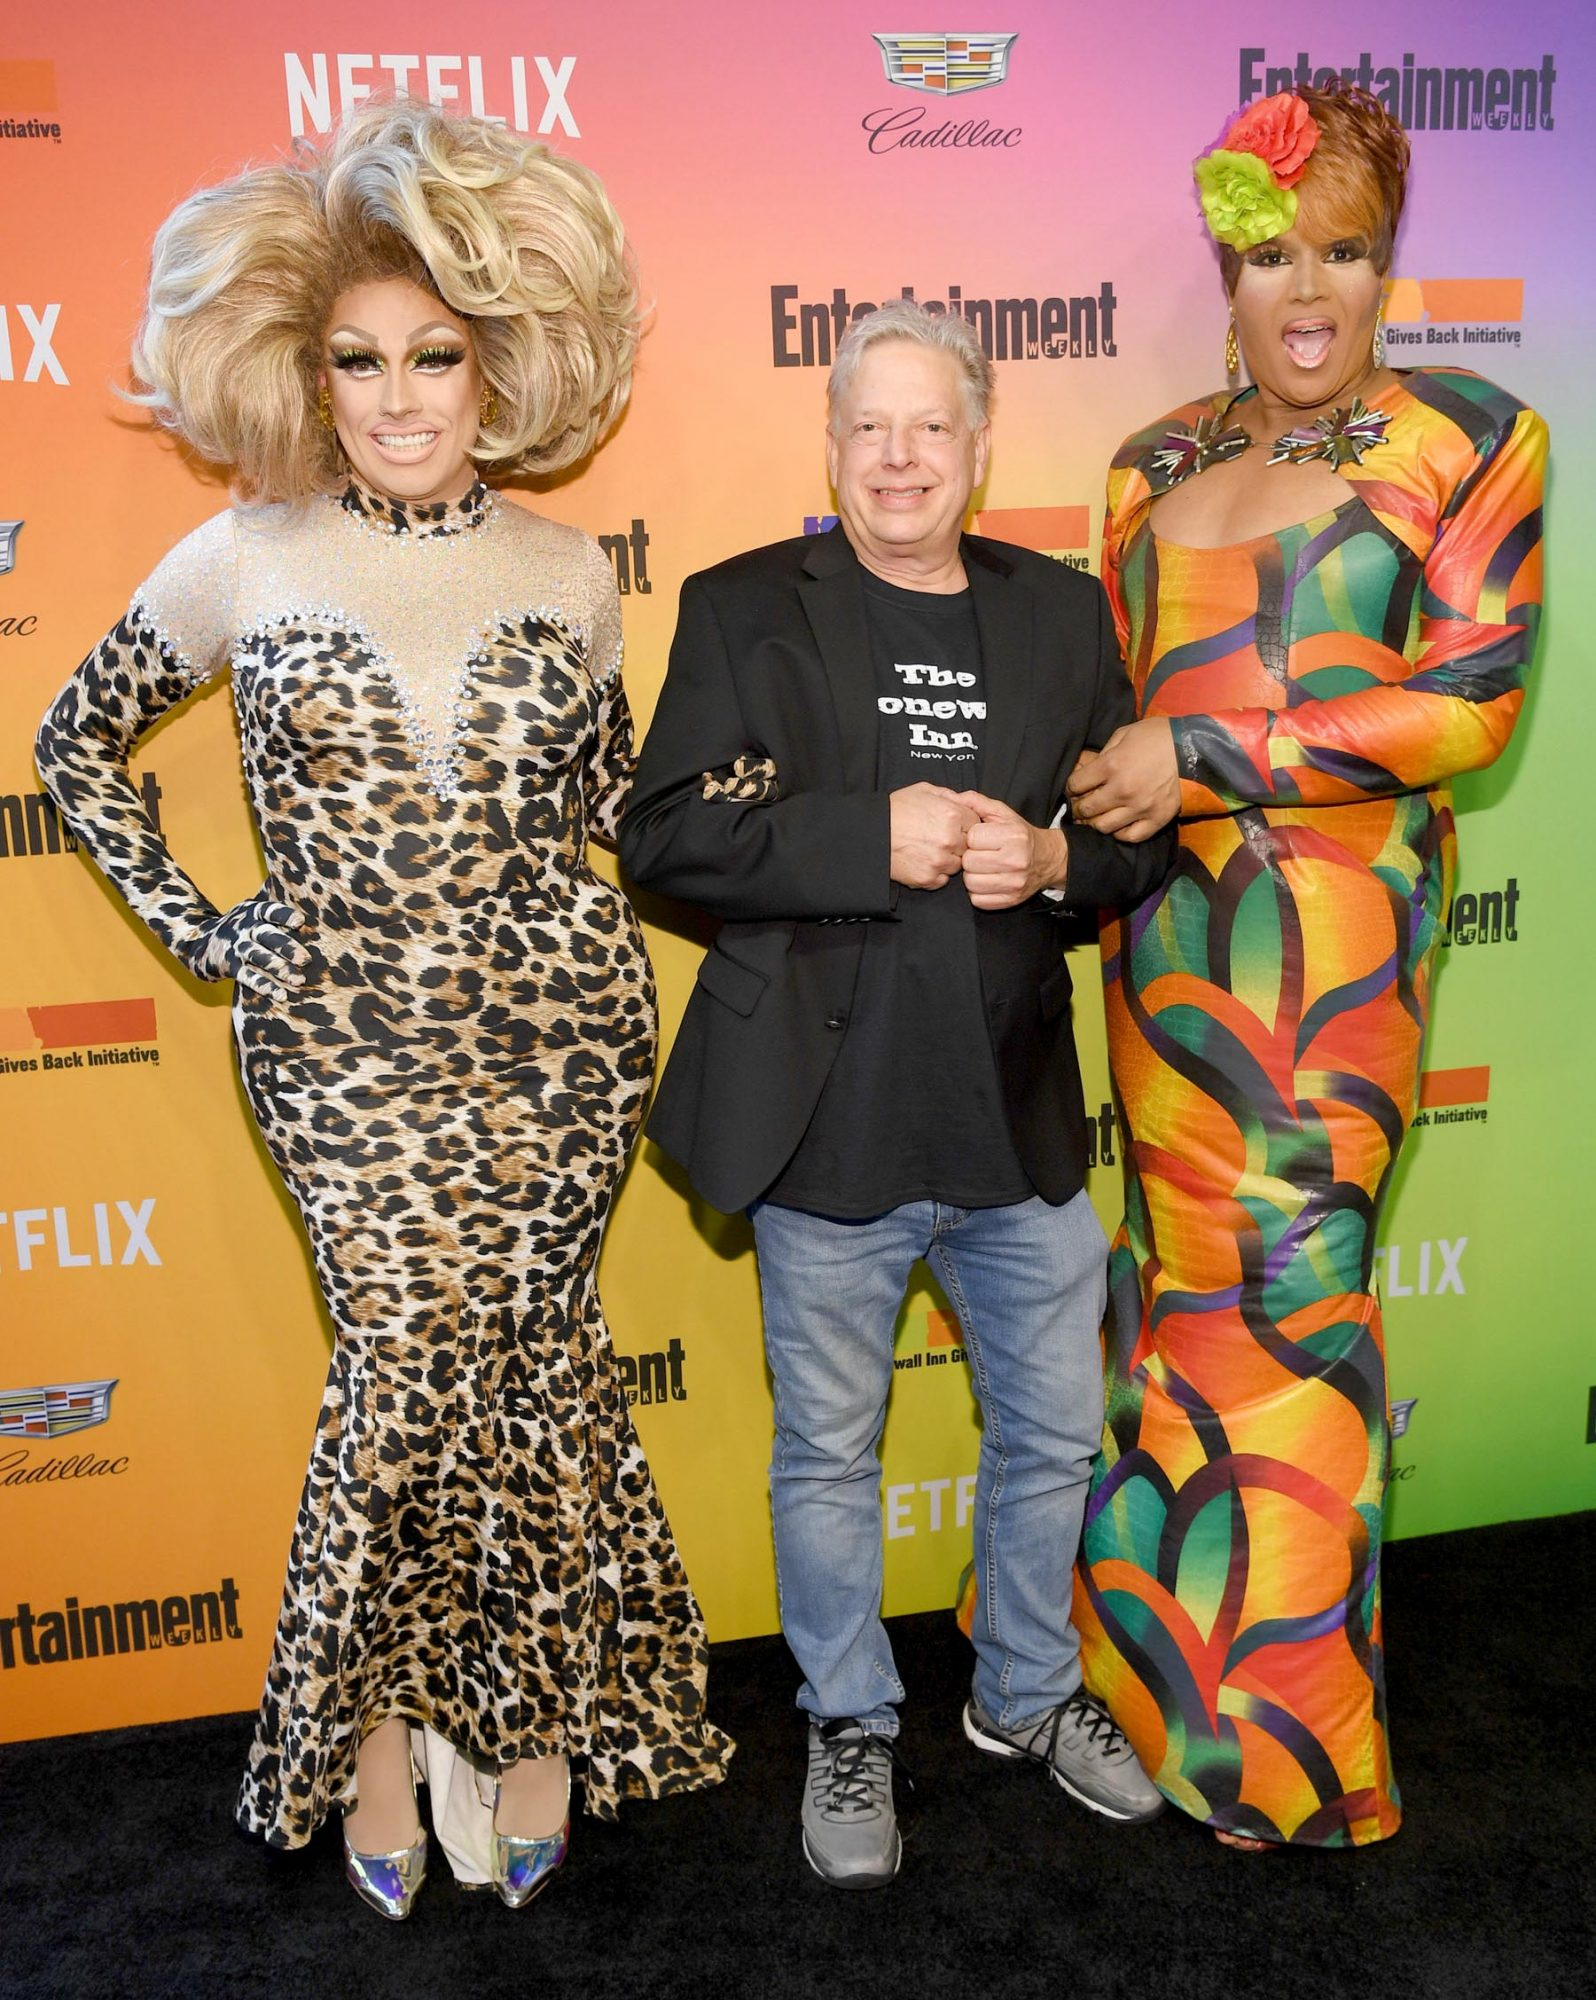 NEW YORK, NEW YORK - JUNE 05: (L-R) Logan Hardcore, Kurt Kelly, and Jacqueline Dupree attend as Entertainment Weekly Celebrates Its Annual LGBTQ Issue at the Stonewall Inn on June 05, 2019 in New York City. (Photo by Dimitrios Kambouris/Getty Images for Entertainment Weekly)